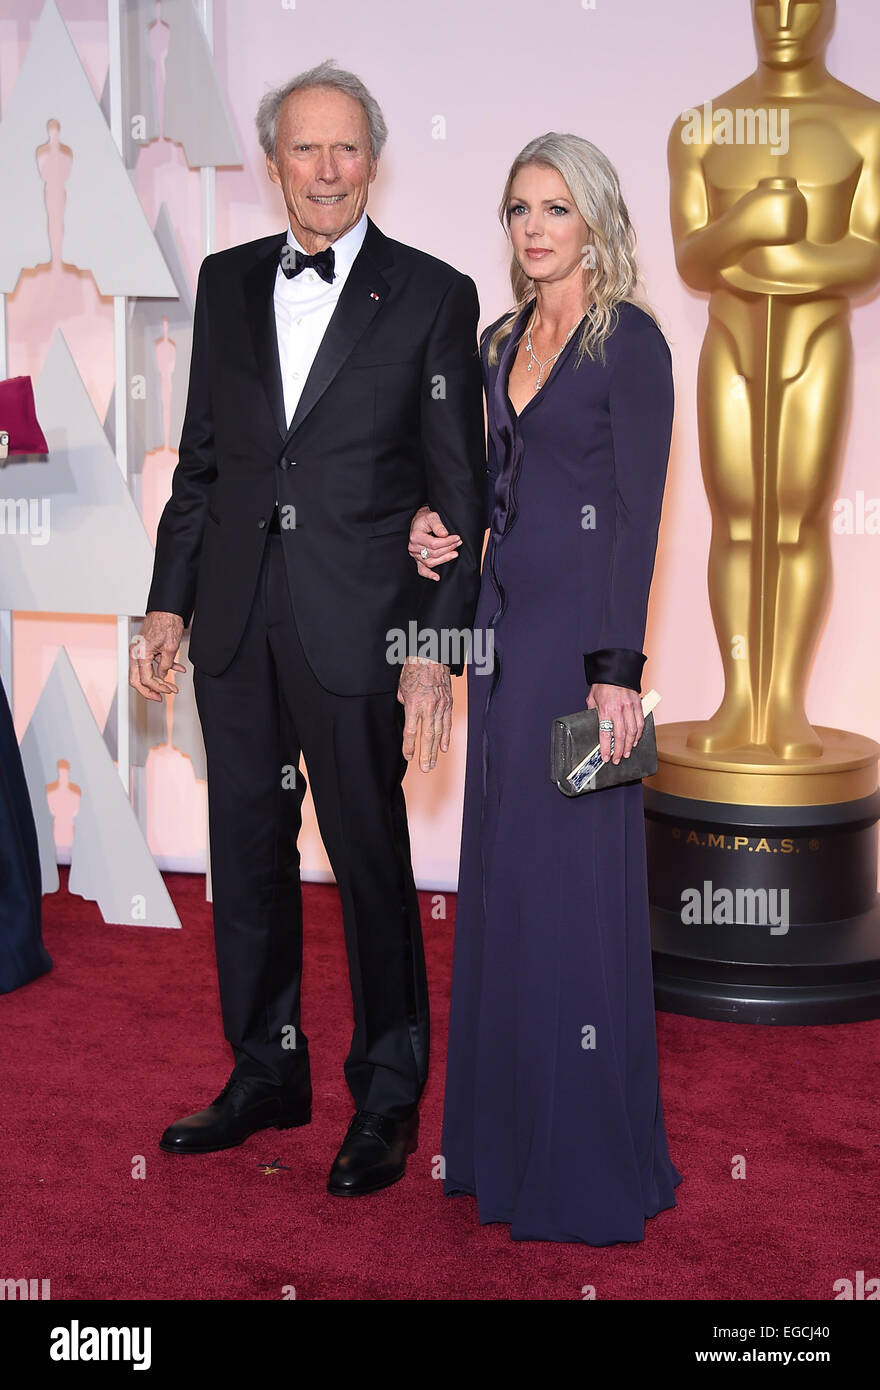 Hollywood, California, USA. 22nd Feb, 2015. CLINT EASTWOOD and CHRISTINE SANDERA on the red carpet during arrivals for the 87th Academy Awards held at the Dolby Theatre. Credit:  Lisa O'Connor/ZUMA Wire/ZUMAPRESS.com/Alamy Live News Stock Photo